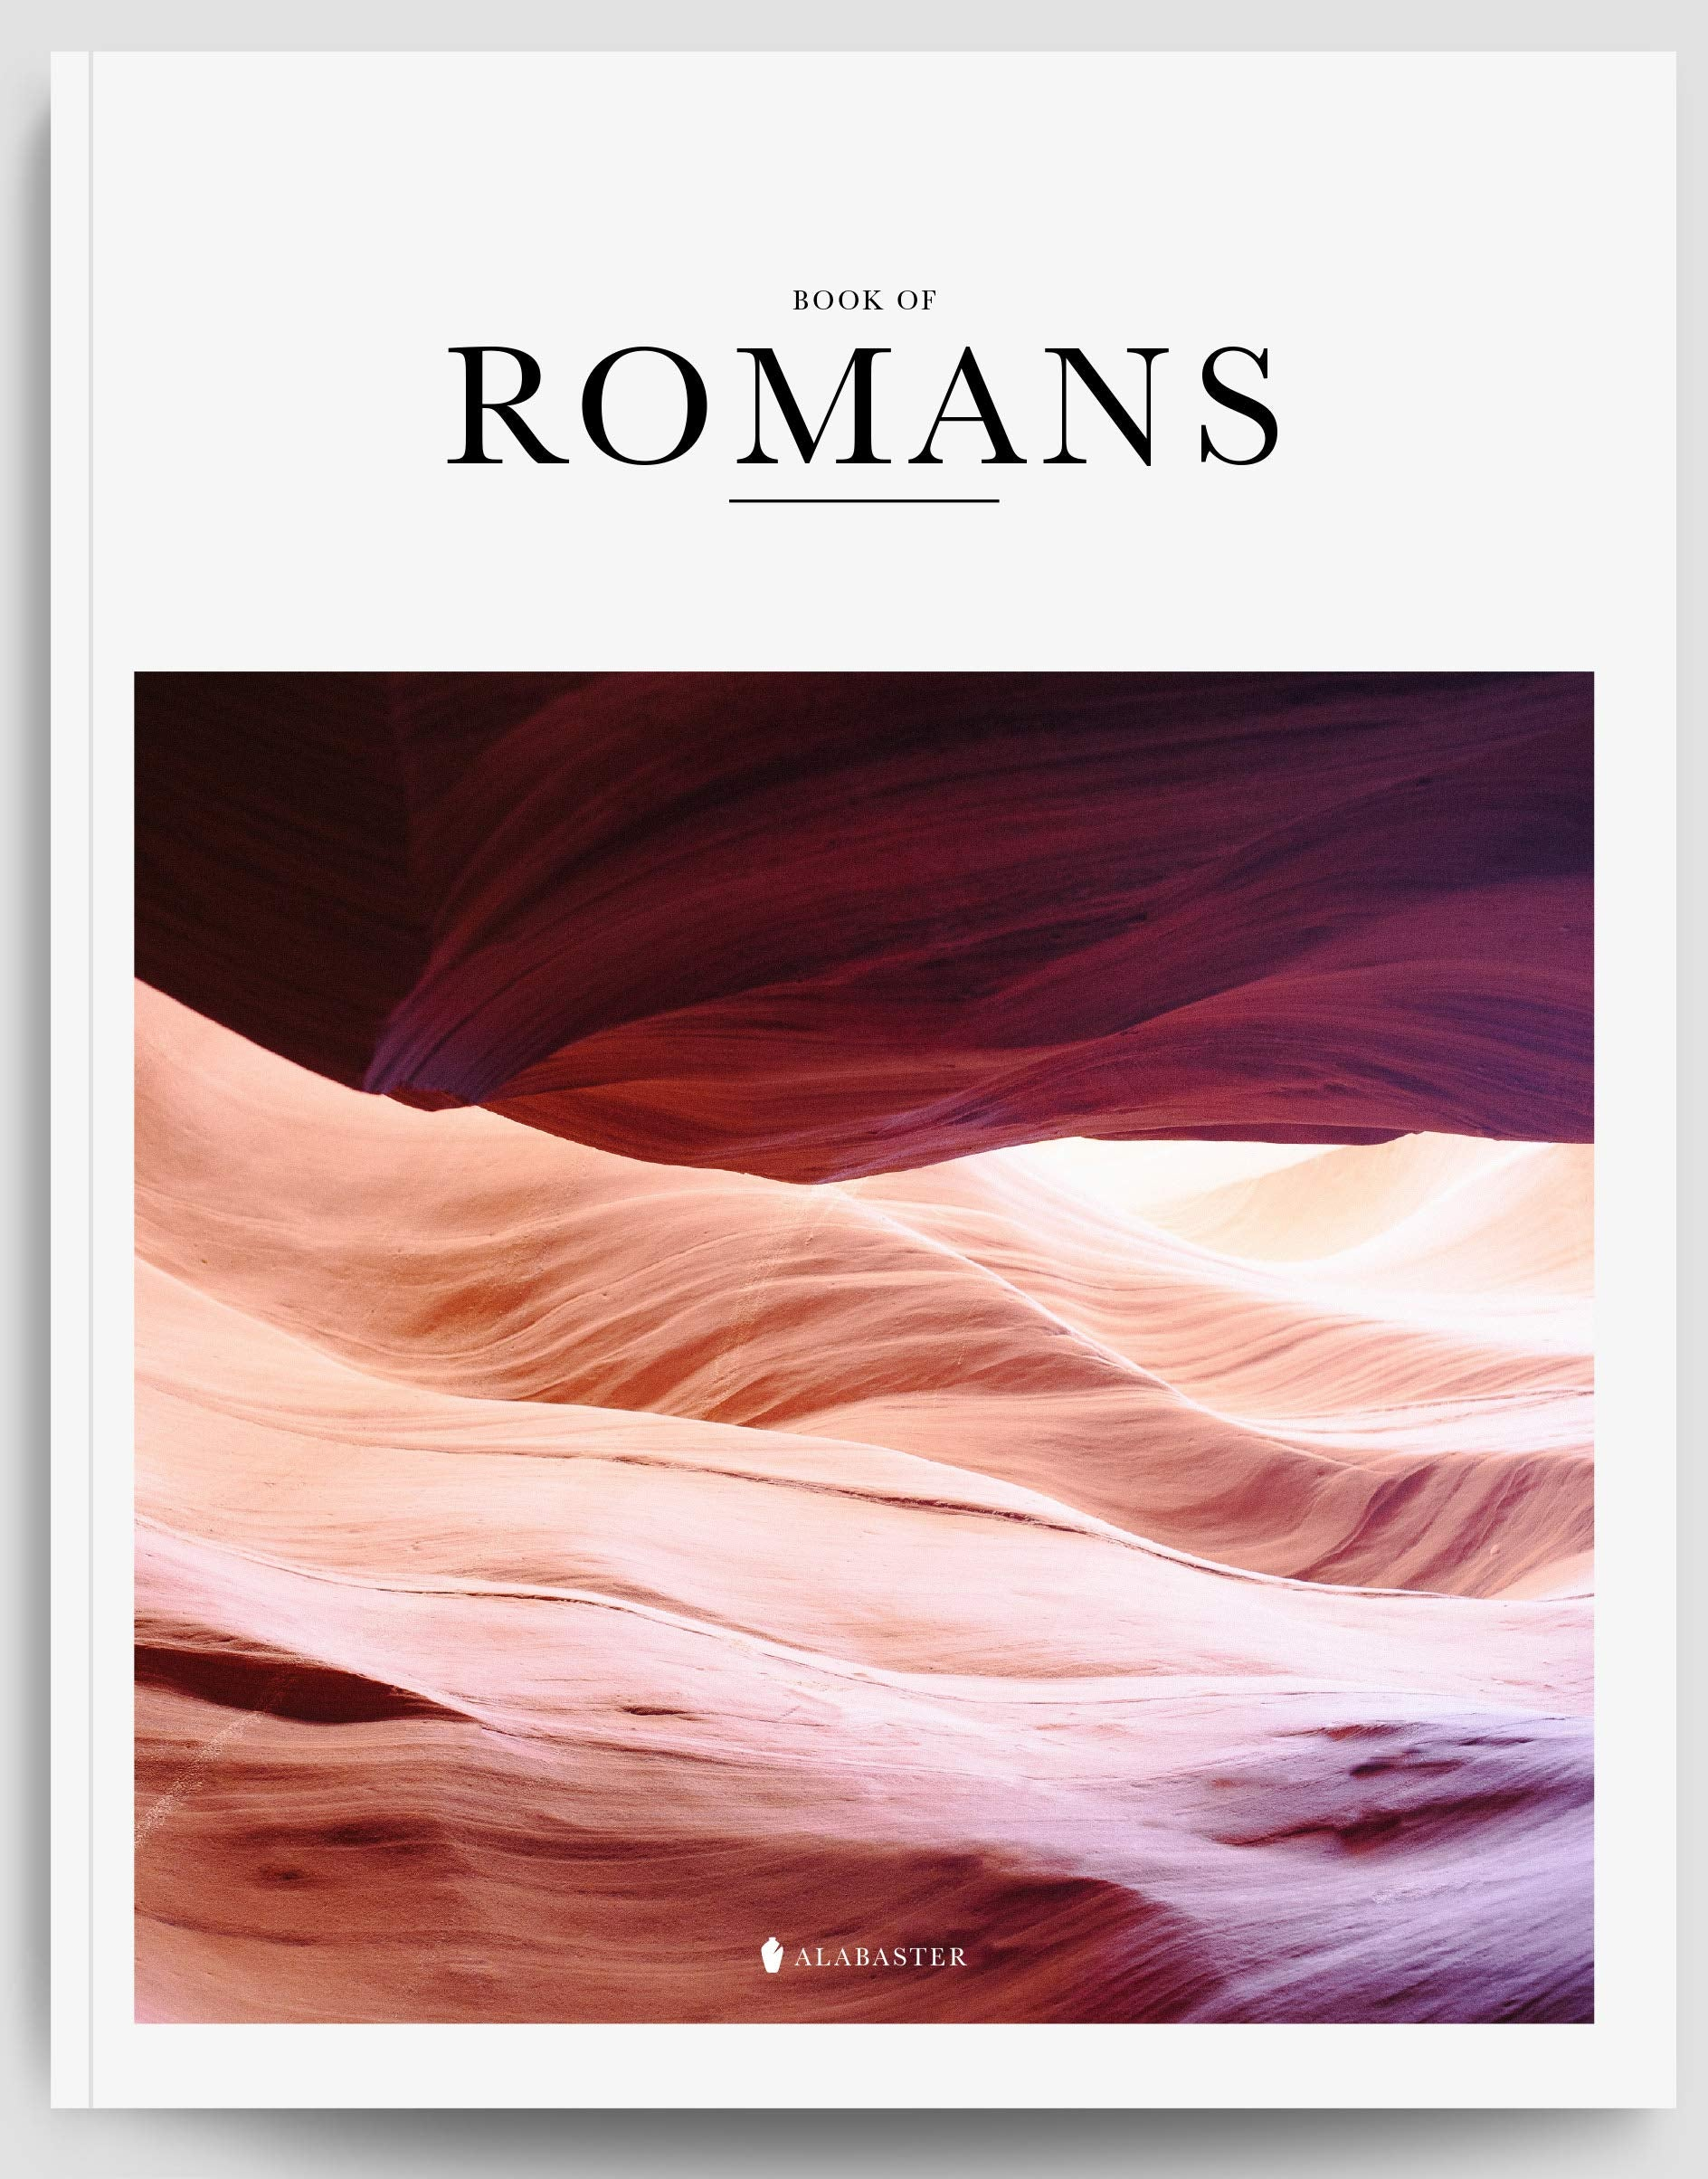 ROCKONLINE | New Creation Church | Joseph Prince | Christian Living | Alabaster Co. | Christian Creative | Book of Romans | NLT | Bible | Free Shipping for Singapore Orders above $50.